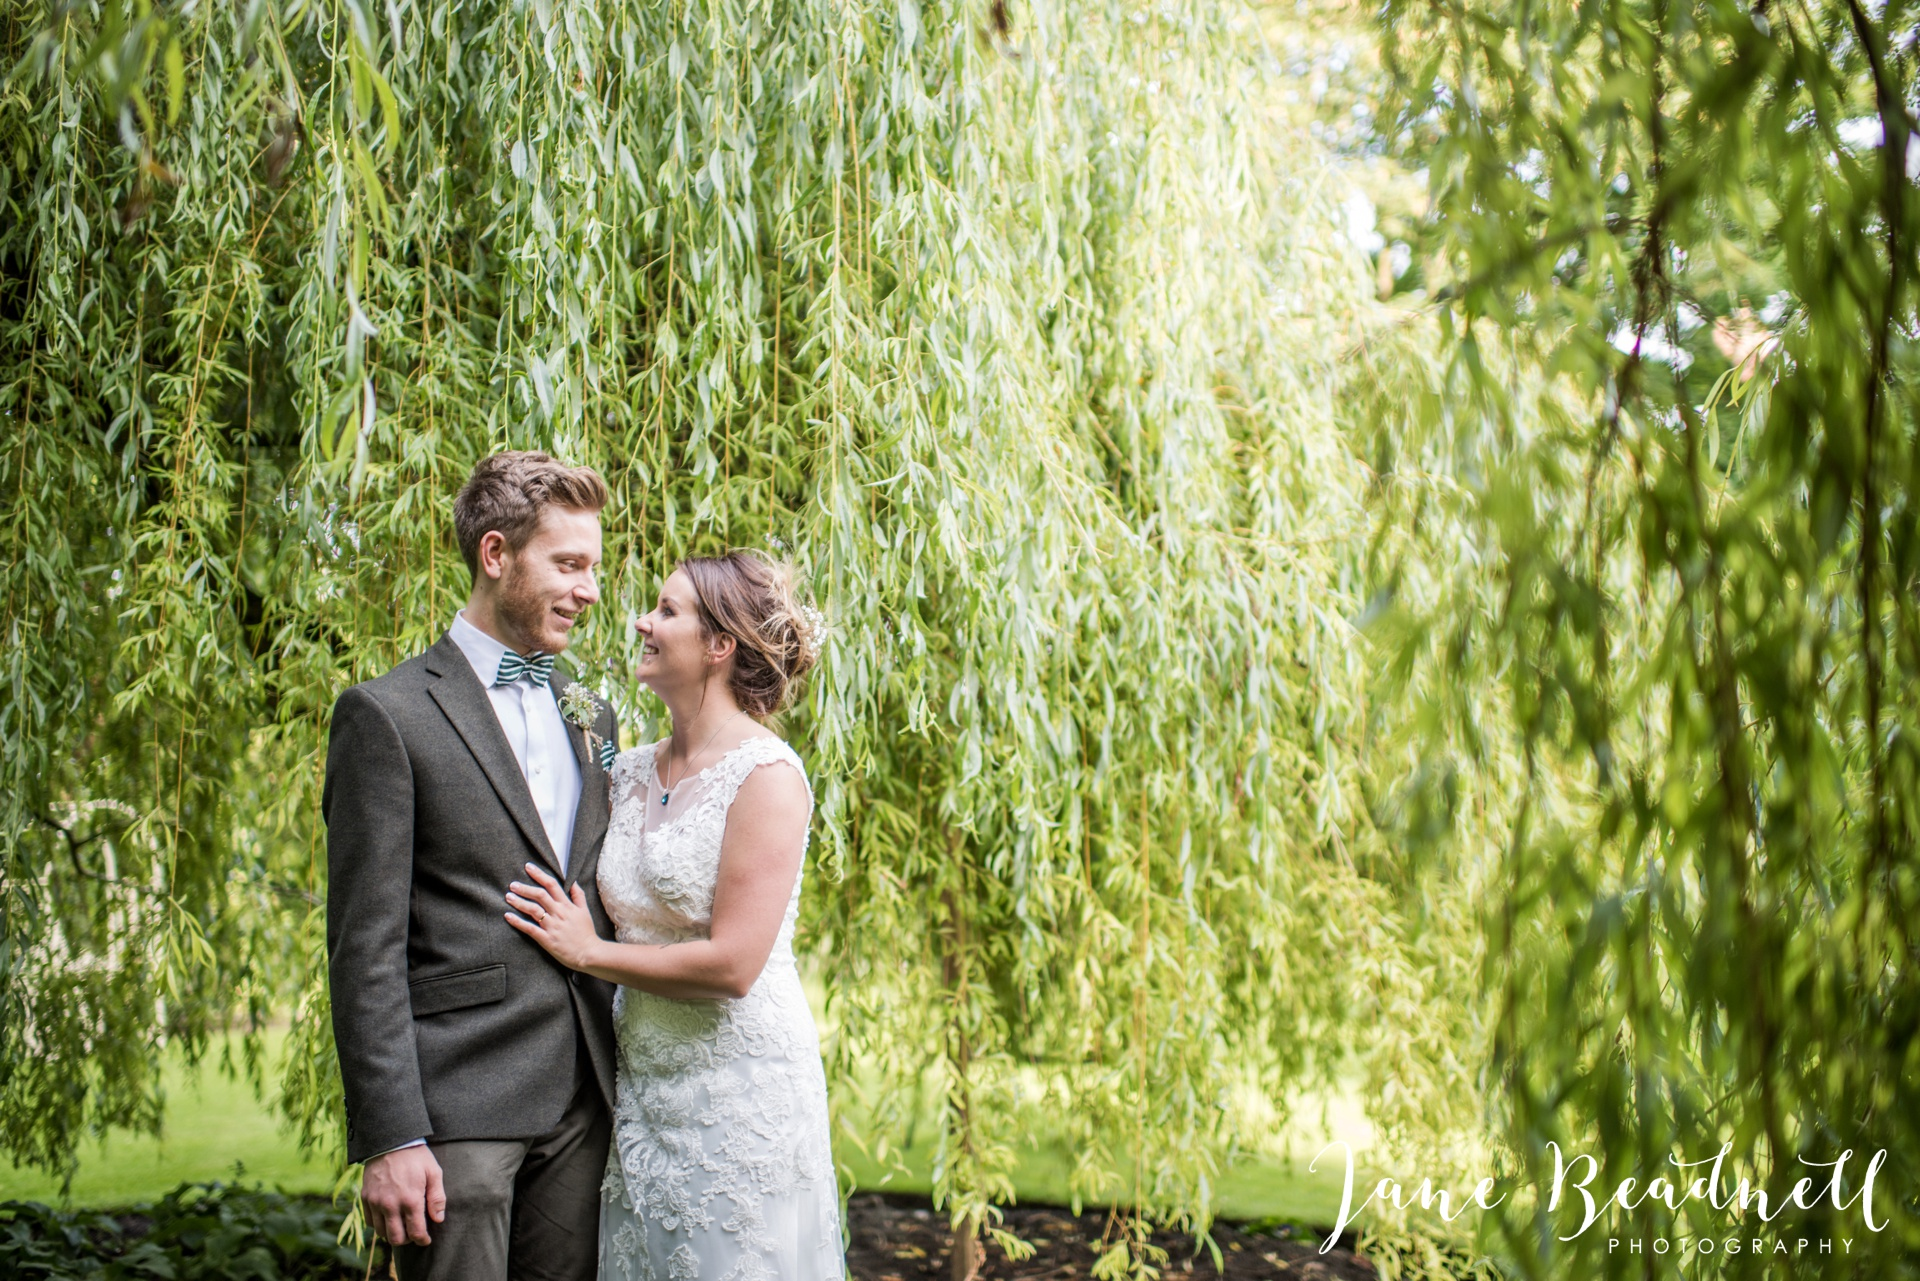 Jane Beadnell fine art wedding photographer The Old Deanery Ripon_0093